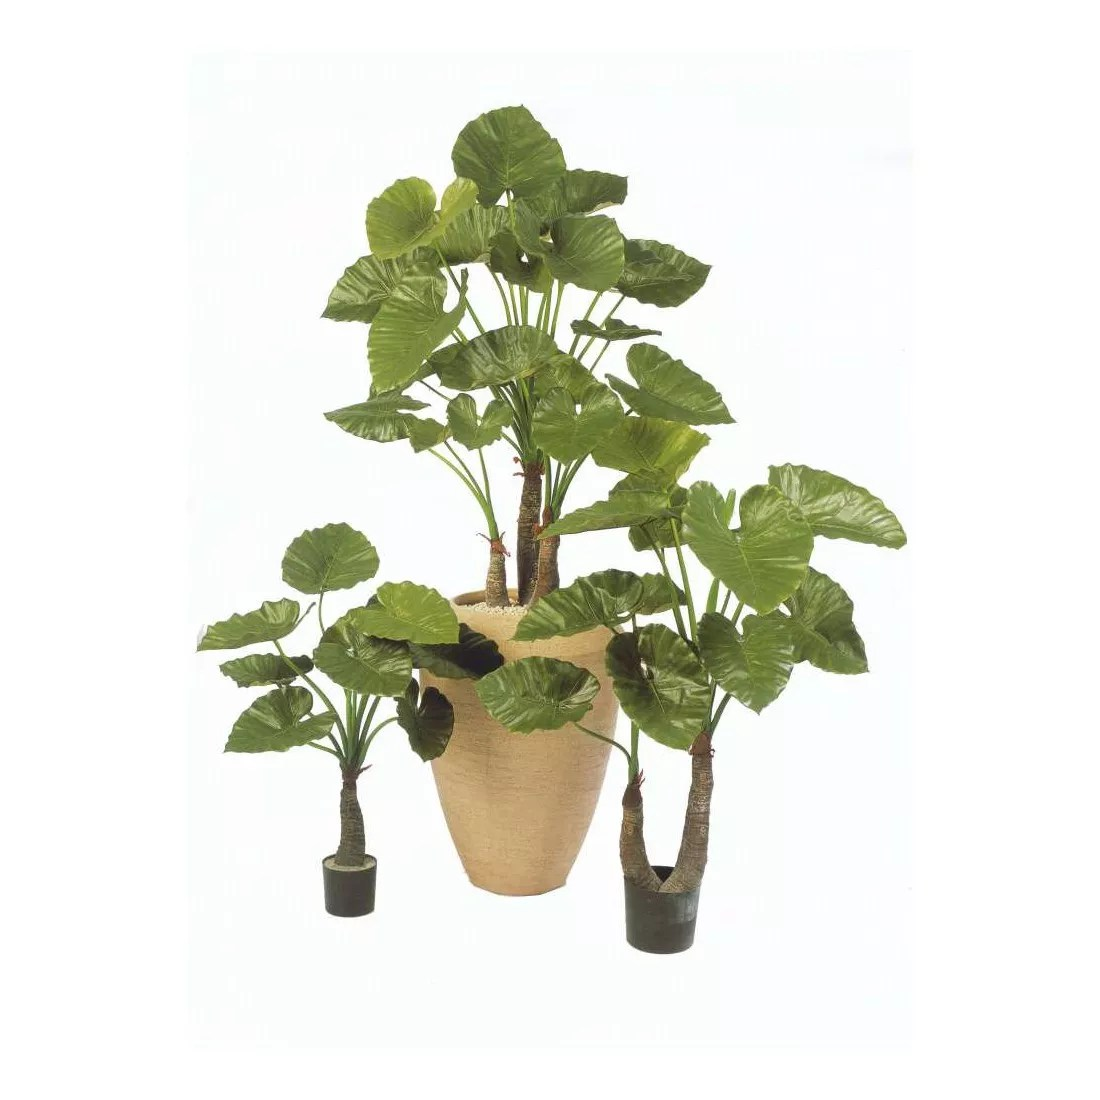 Plante Exterieur Exotique Arbre Exotique Exterieur Simple Arbre Chat Exotique With